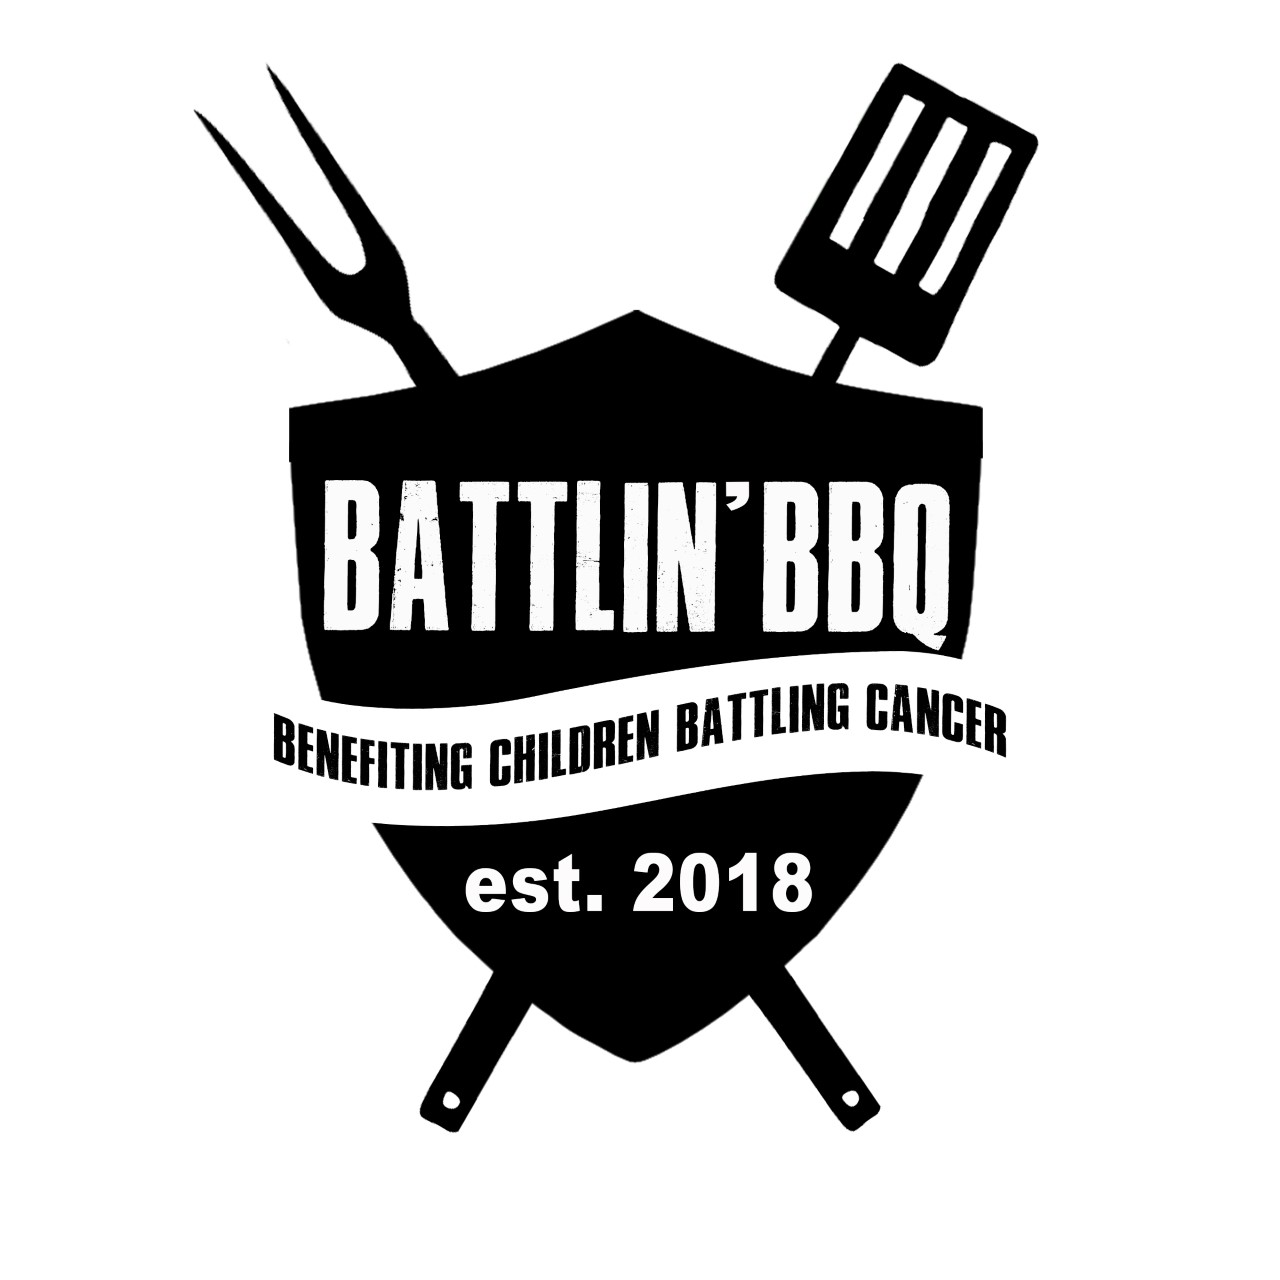 Battlin' BBQ Logo